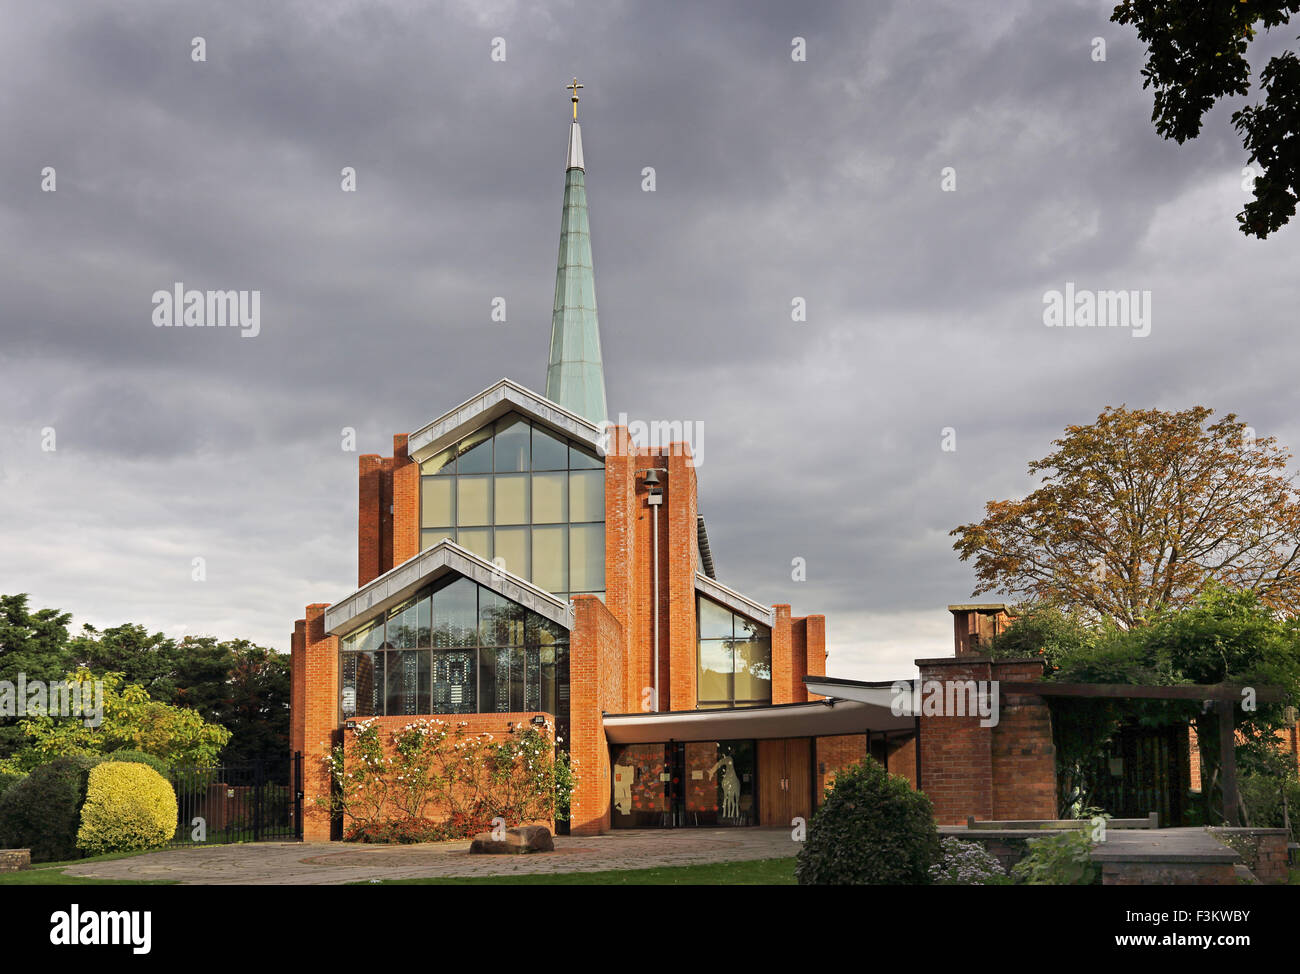 The church of St Barnabus, East Dulwich, London. Built in 1992 to a modern design by Architects Hellmuth, Obata - Stock Image